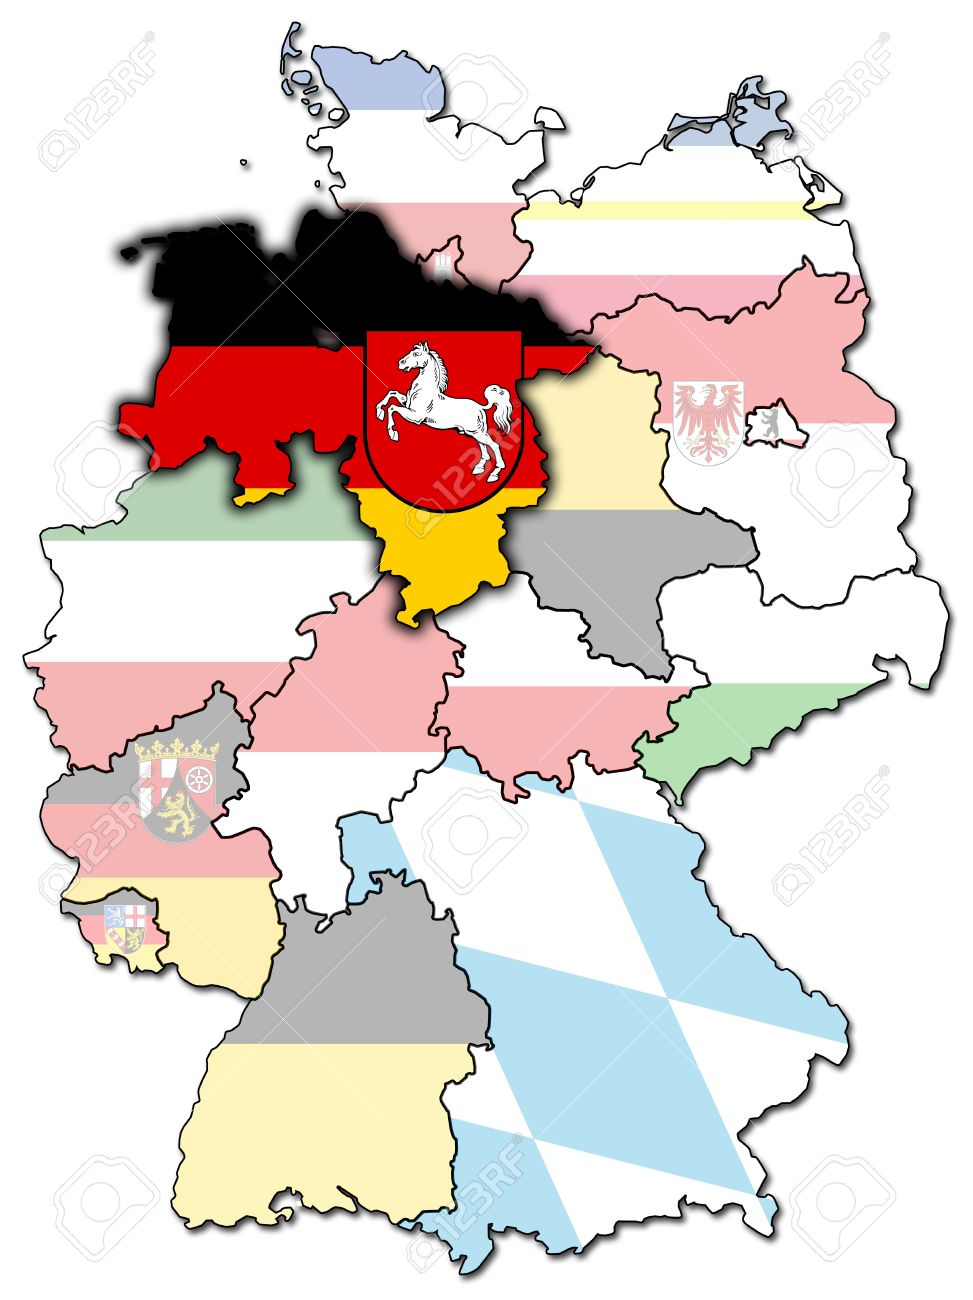 Lower Saxony On Old Administration Map Of German Provinces Stock.